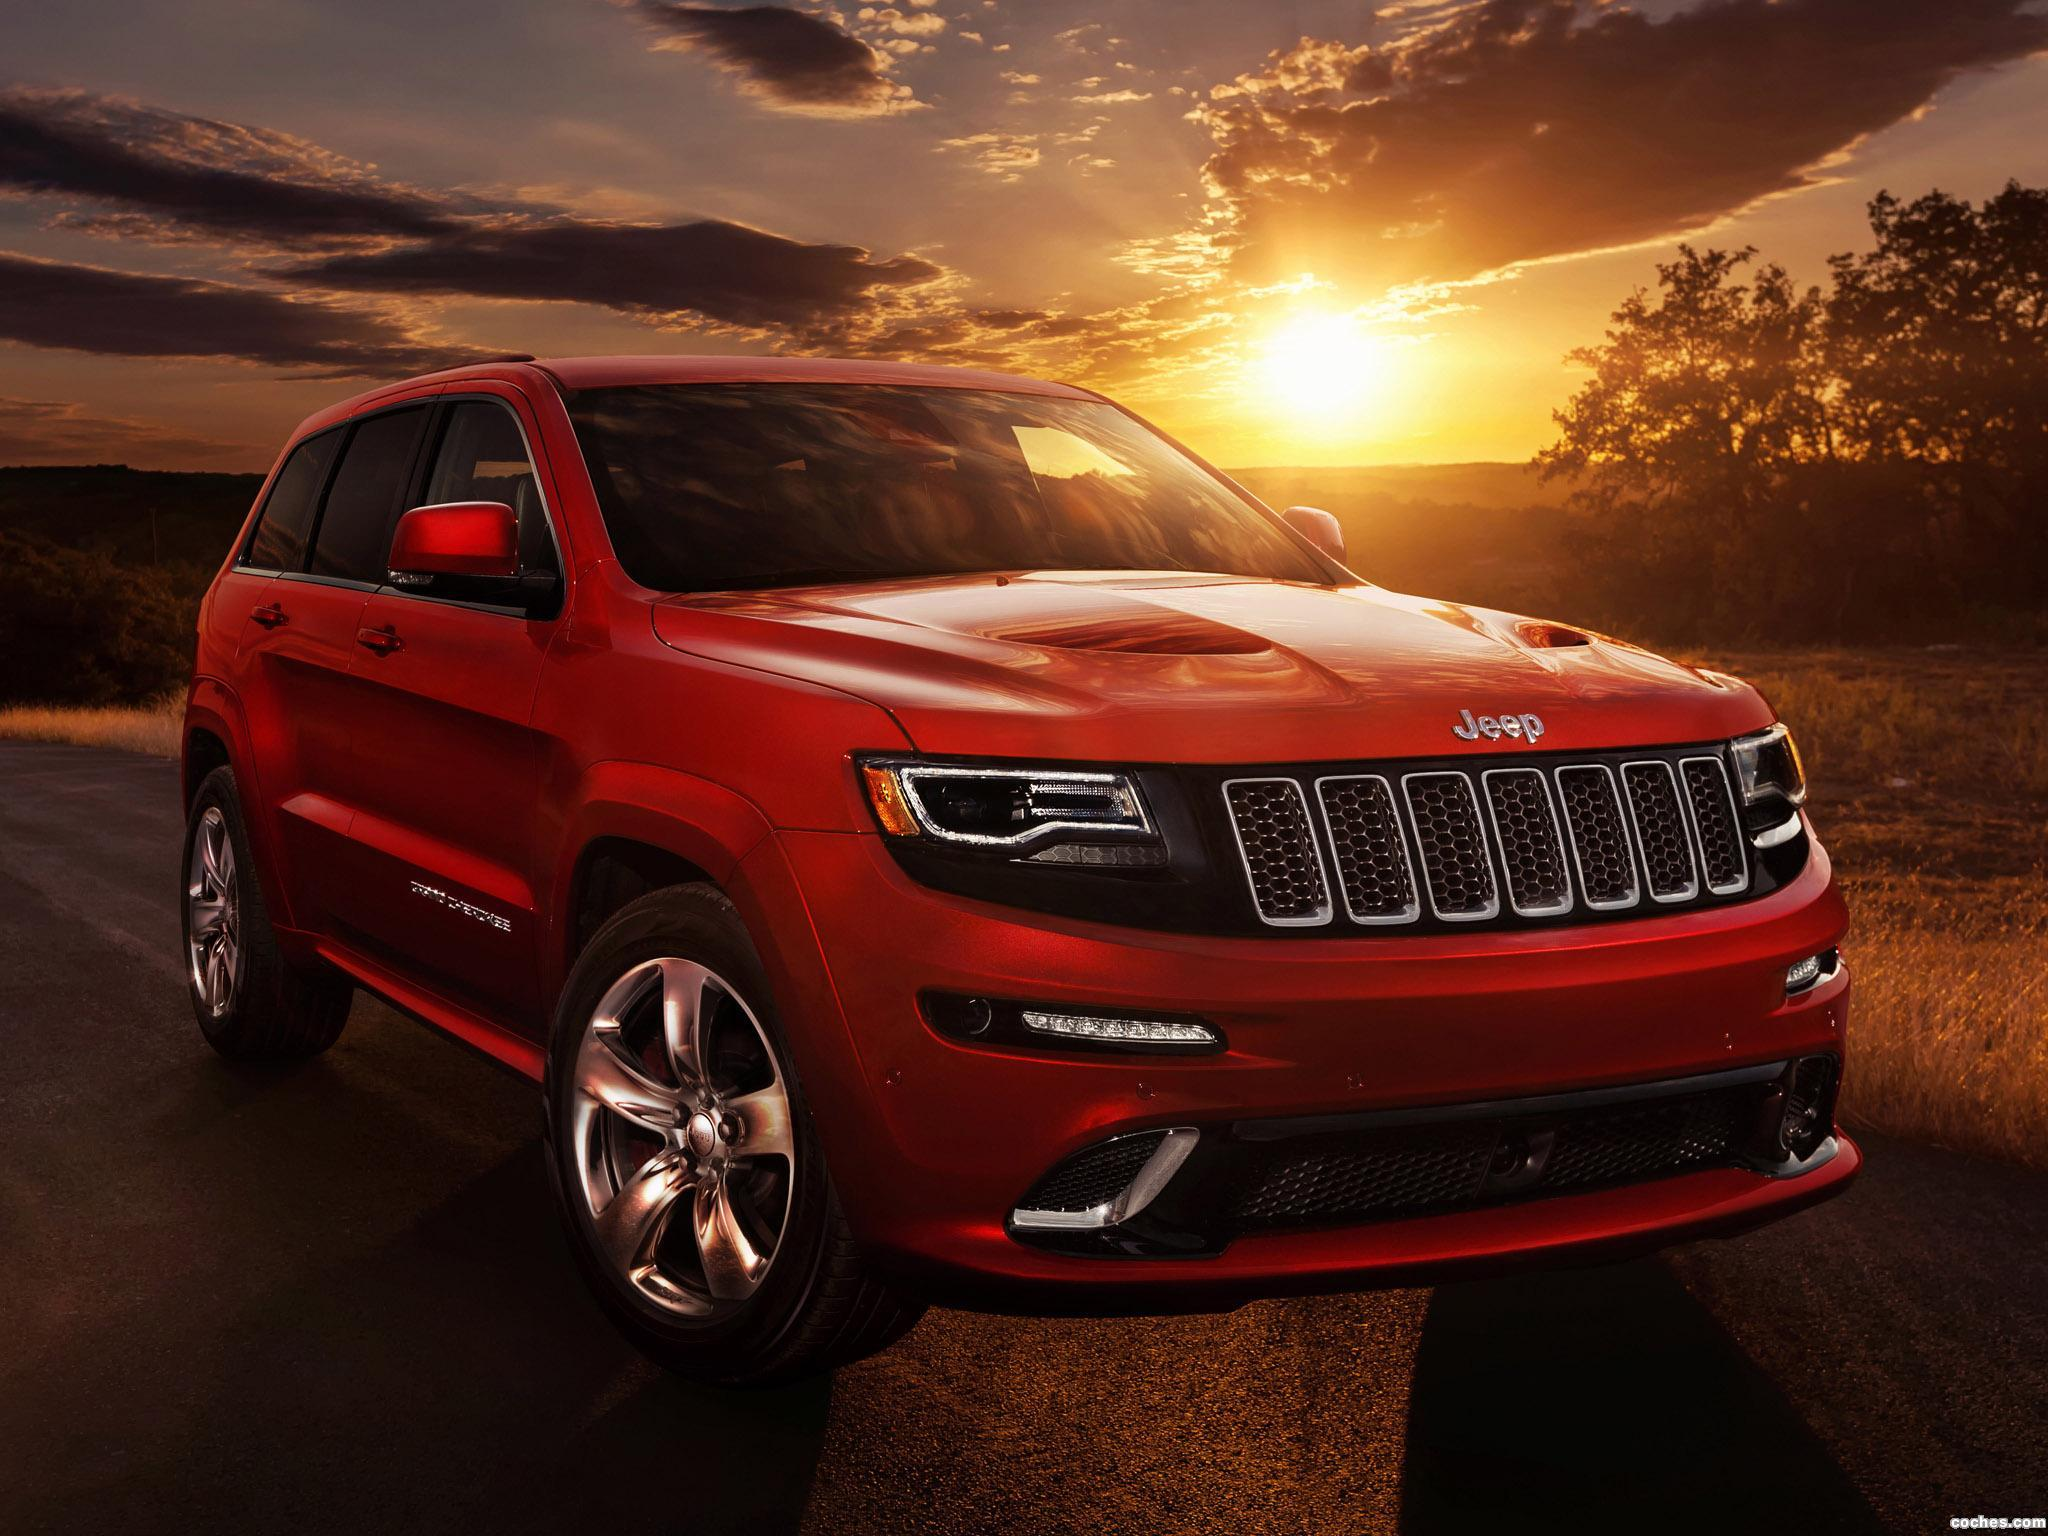 Foto 0 de Jeep Grand Cherokee STR8 2013